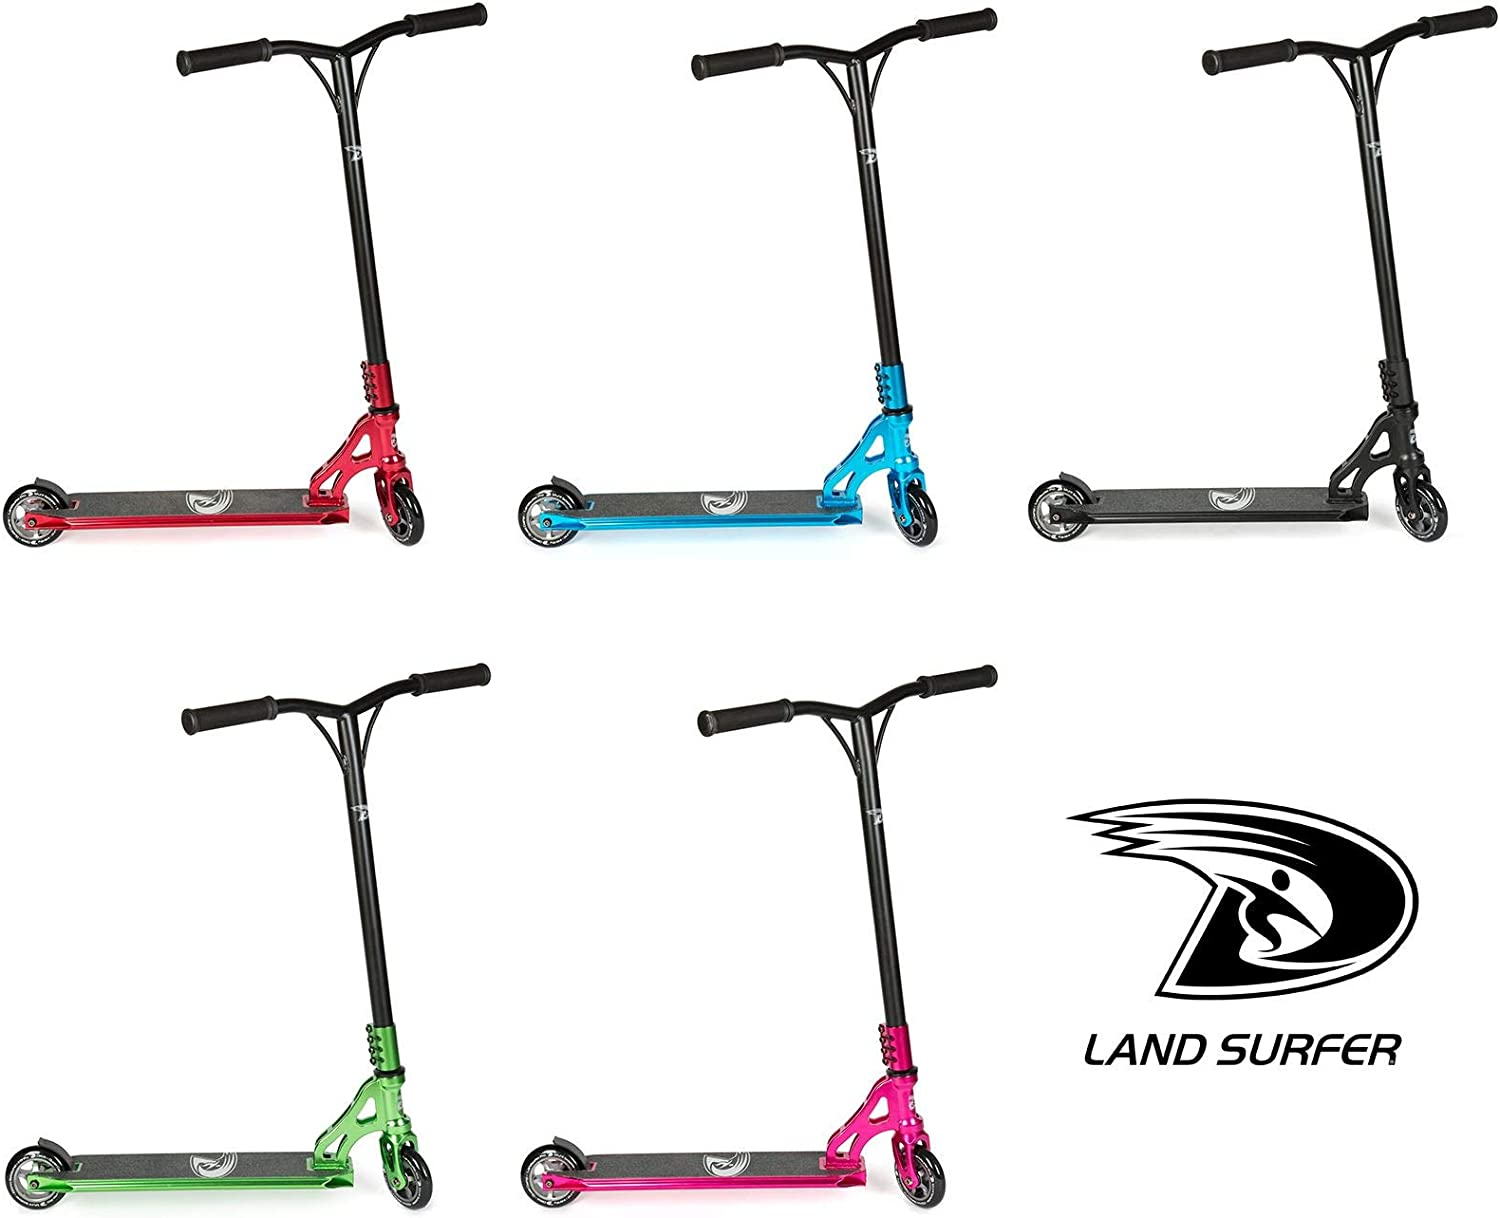 Amazon.com: Land-Surfer Pro Stunt Scooters: Sports & Outdoors